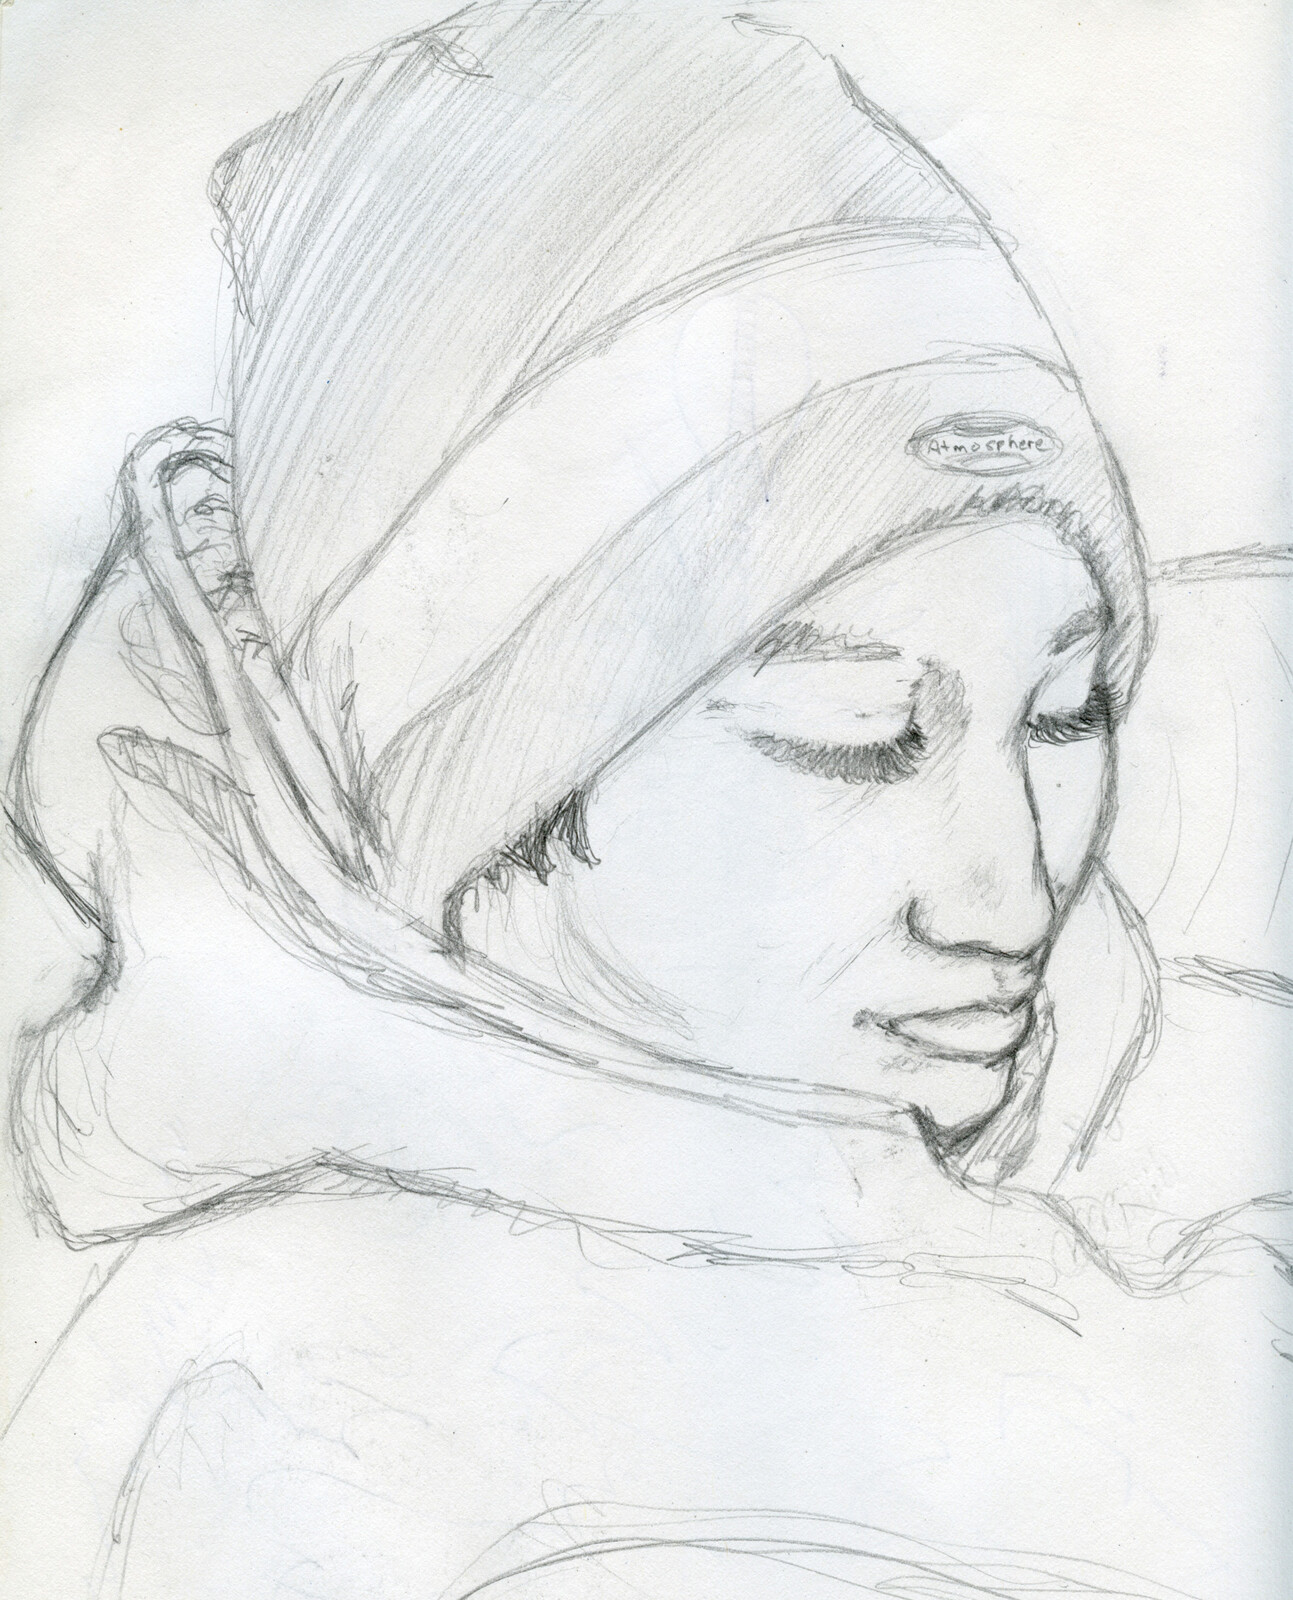 Snowboard Chick Portrait Sketch